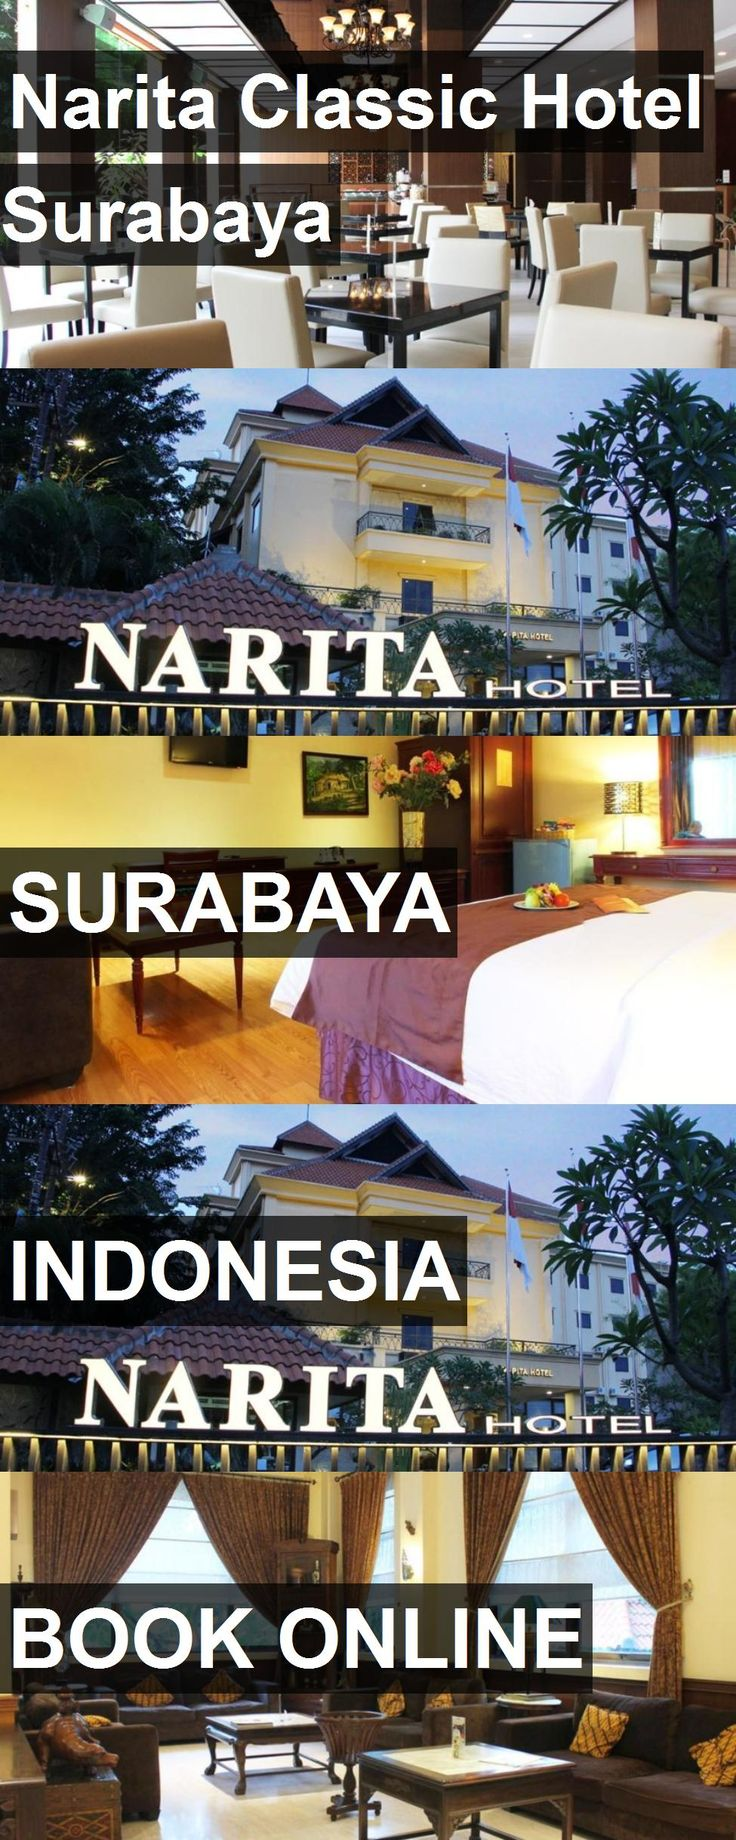 Hotel Narita Classic Surabaya In Indonesia For More Information Photos